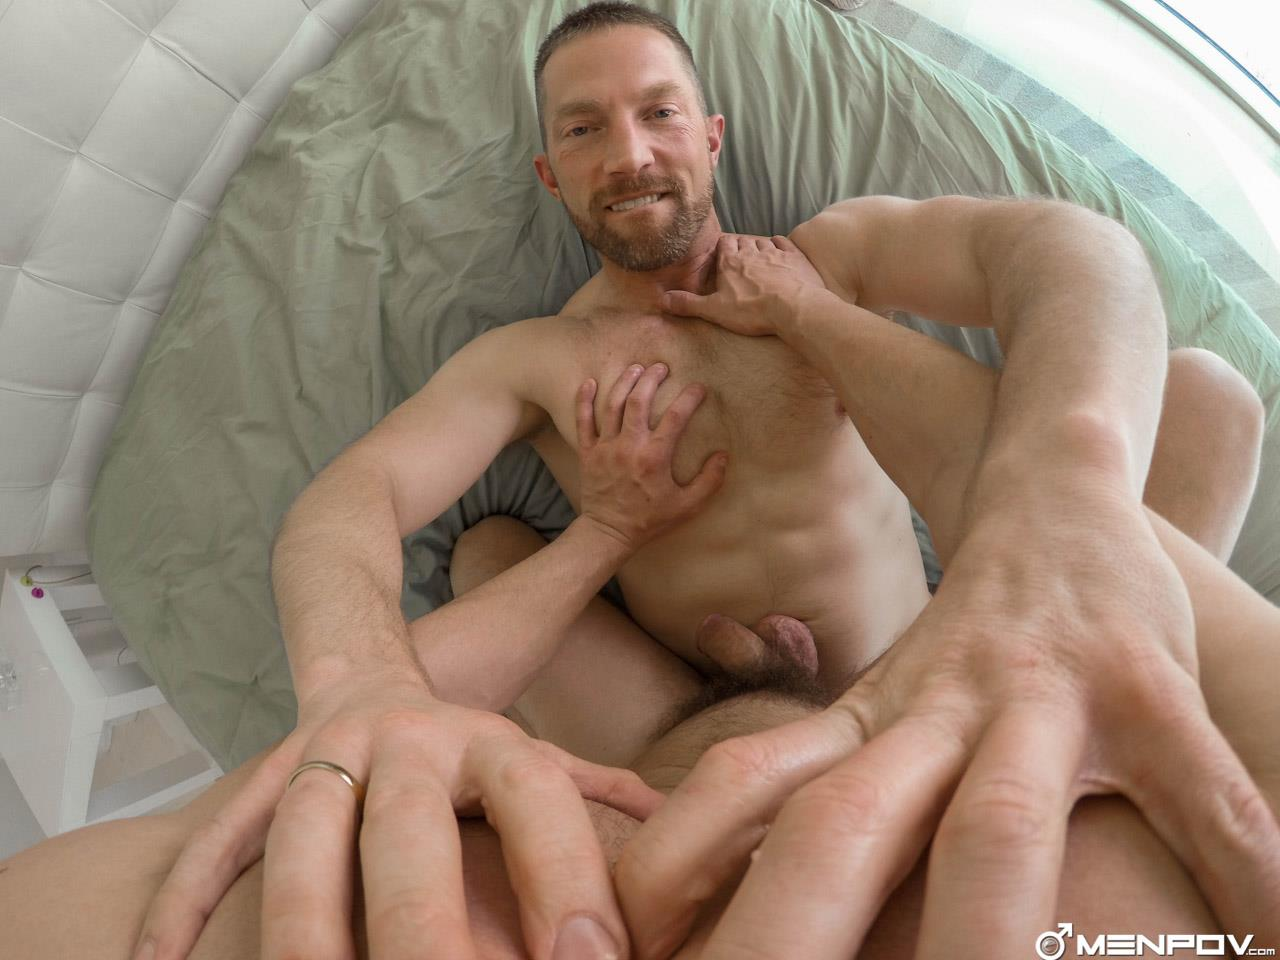 Roommates getting naked in their tiny iowa apartment 9